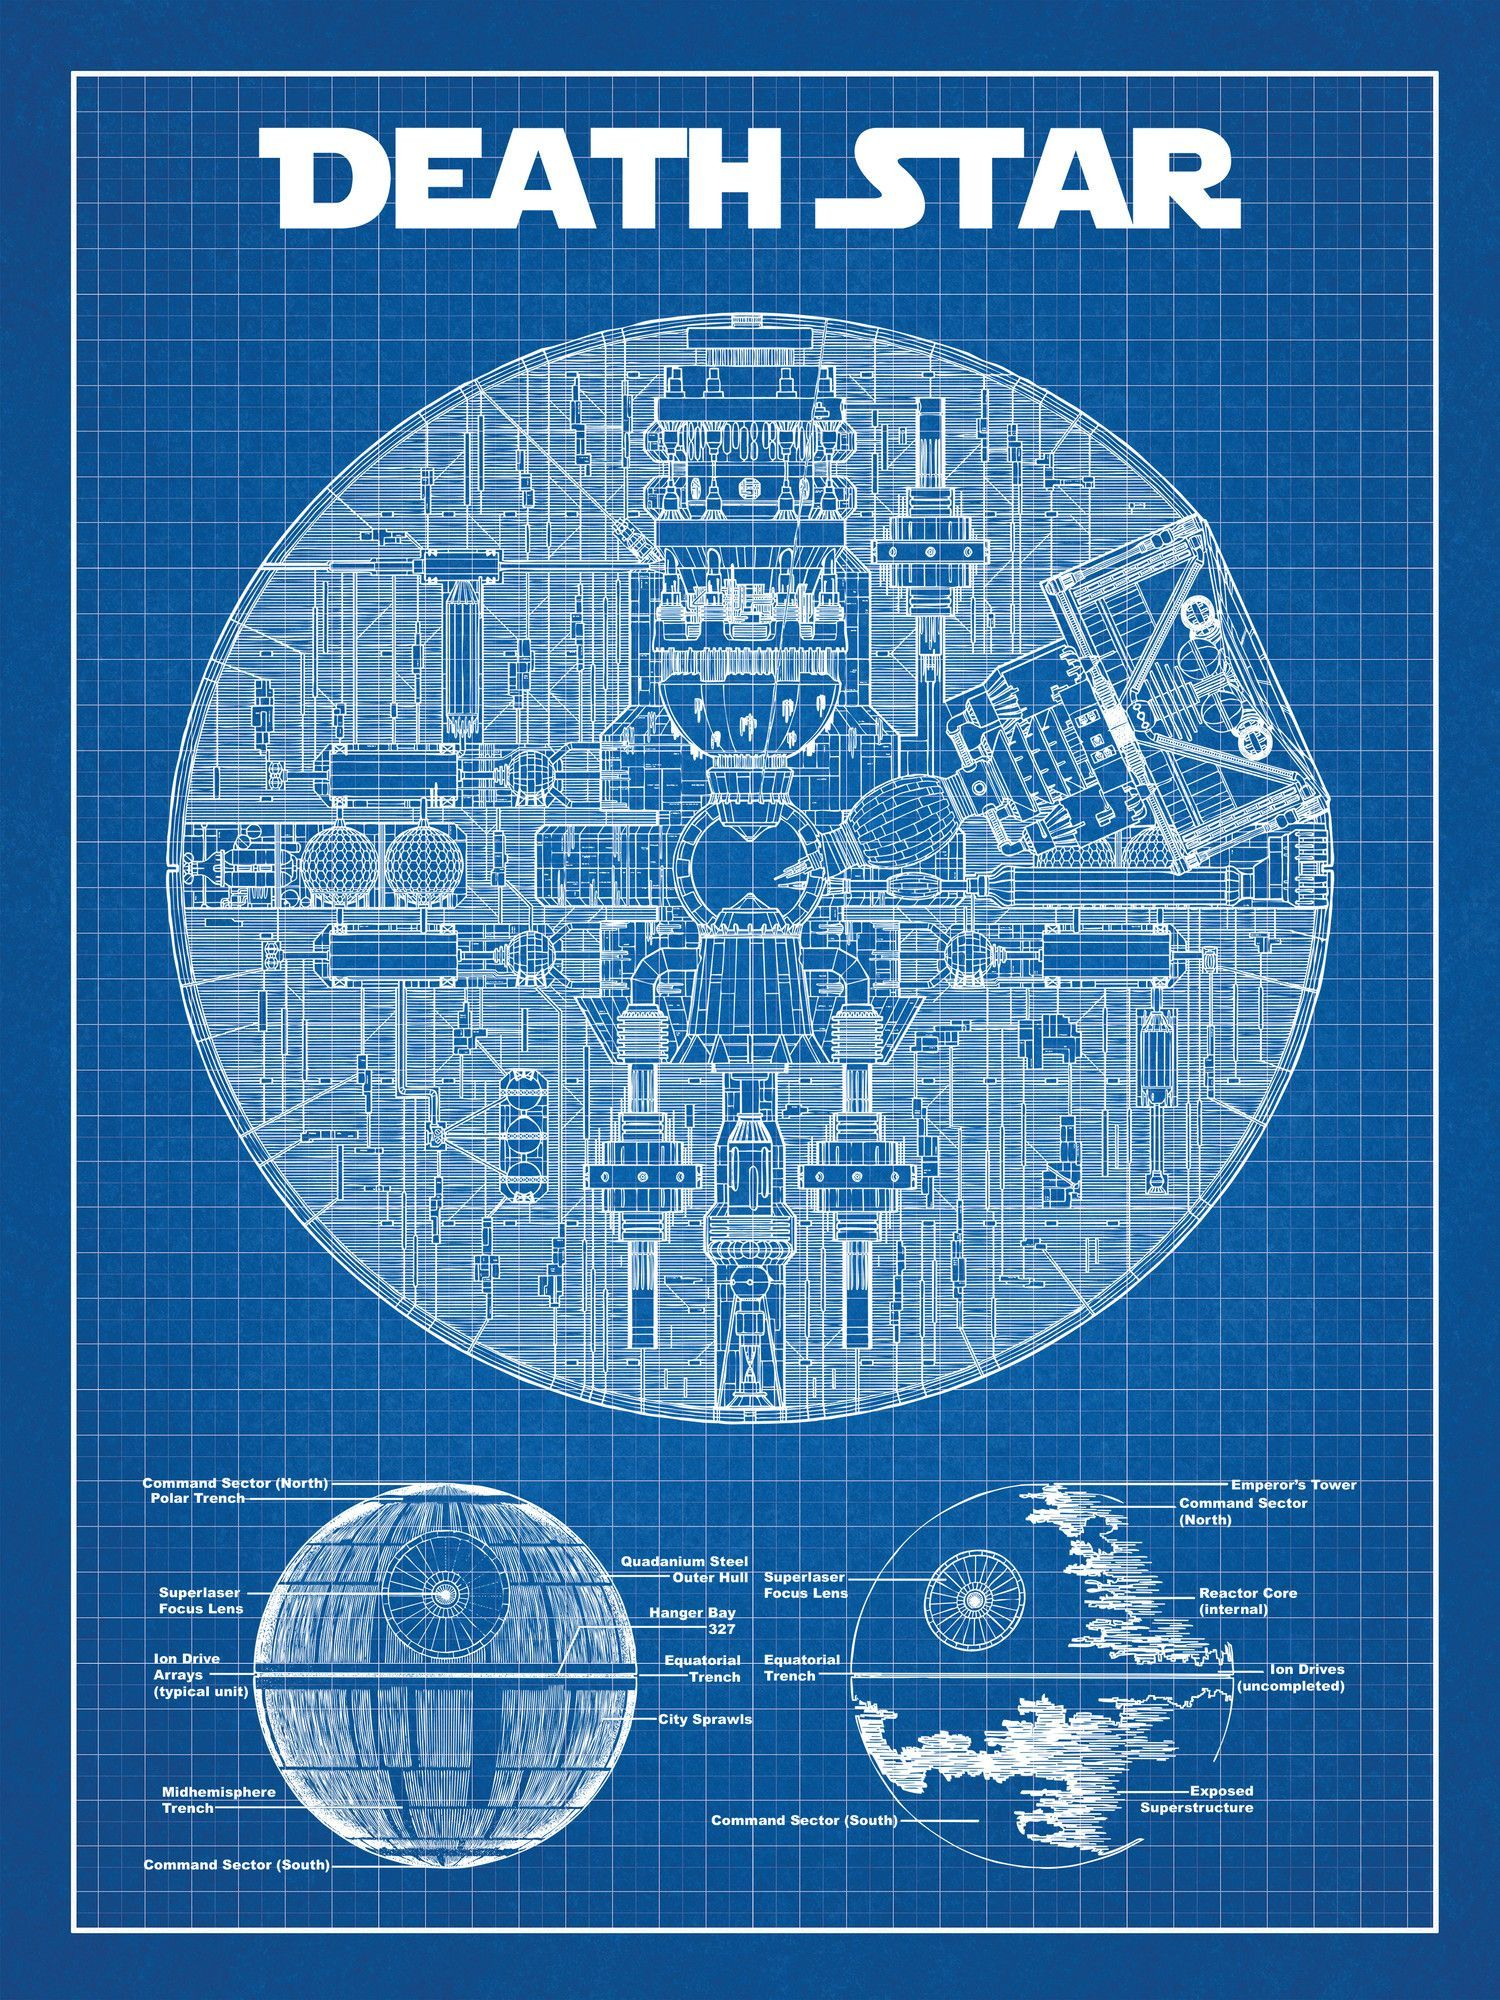 Star wars death star blueprint graphic art poster in blue gridwhite star wars death star blueprint graphic art poster in blue gridwhite ink malvernweather Image collections